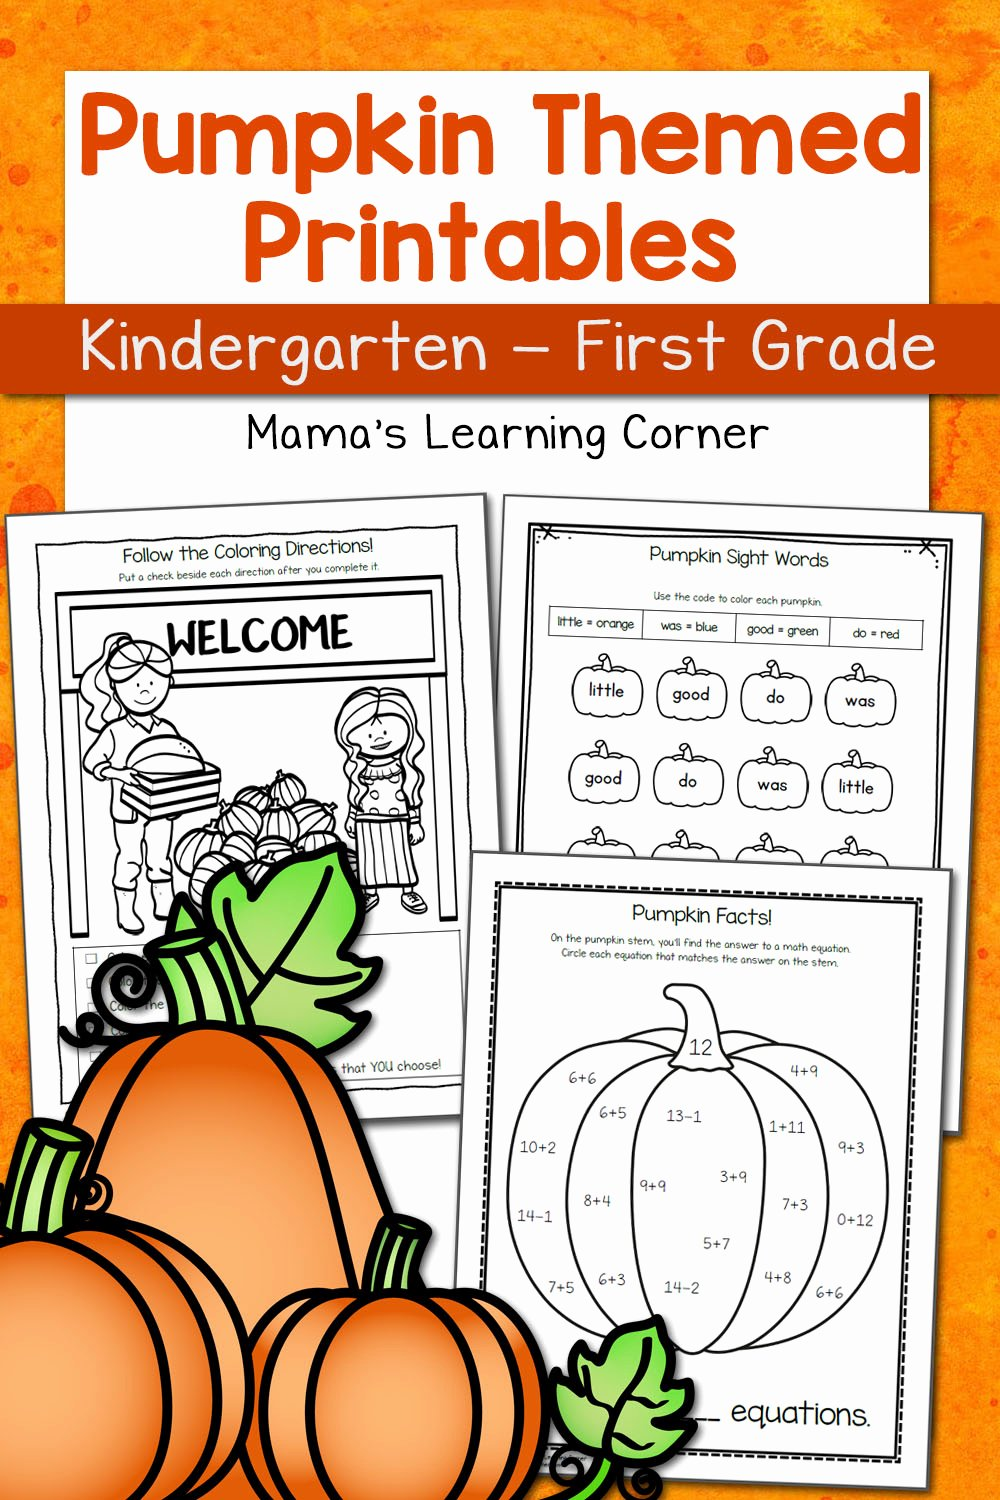 Pumpkin Math Worksheets for Preschoolers Kids Pumpkin Worksheets for Kindergarten and First Grade Mamas